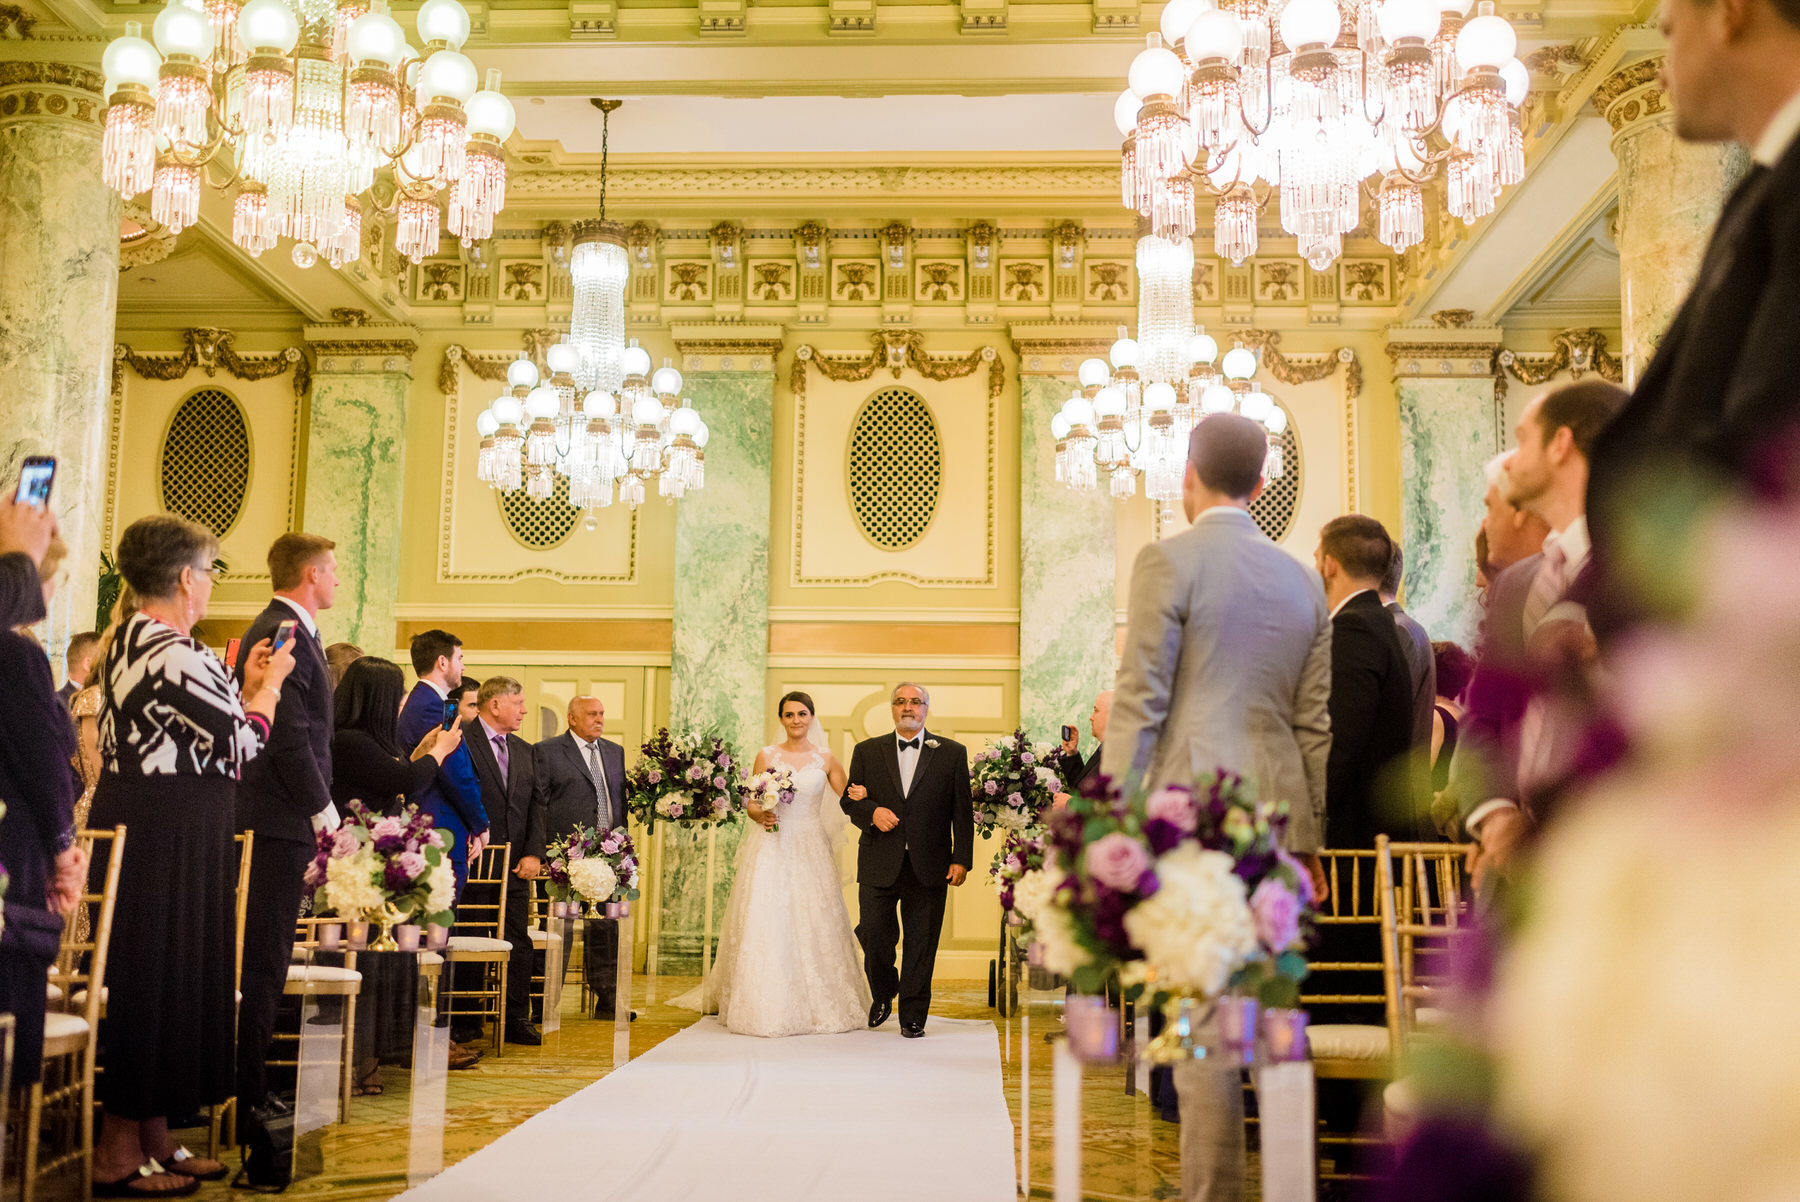 Willard InterContinental Wedding ceremony by Washington DC Wedding Photographer Adam Mason